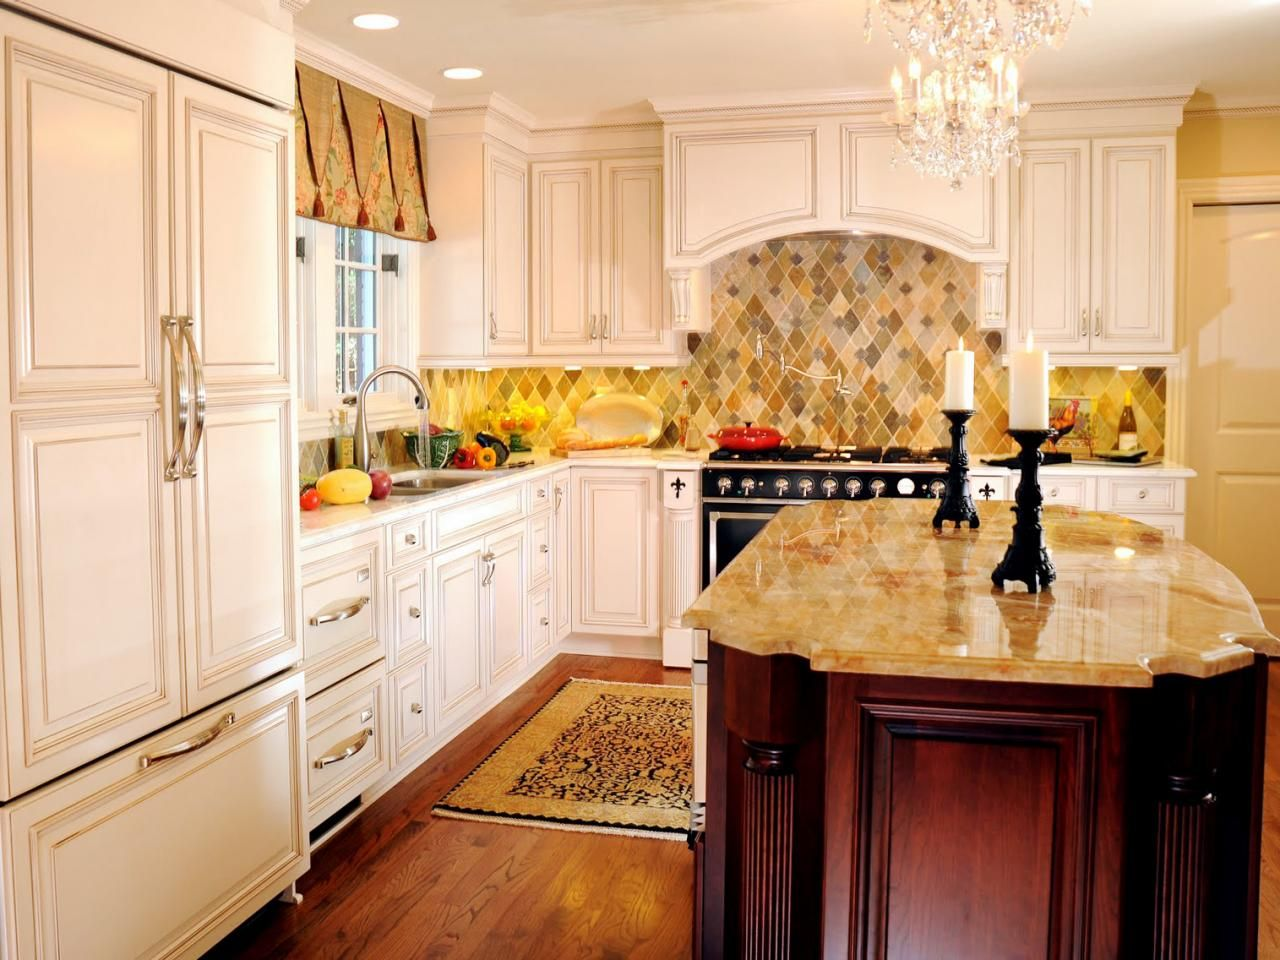 Pictures of kitchens with cream cabinets - This French Country Kitchen Designed By Katheryn Cowles Features Cream Painted Cabinets And A Granite